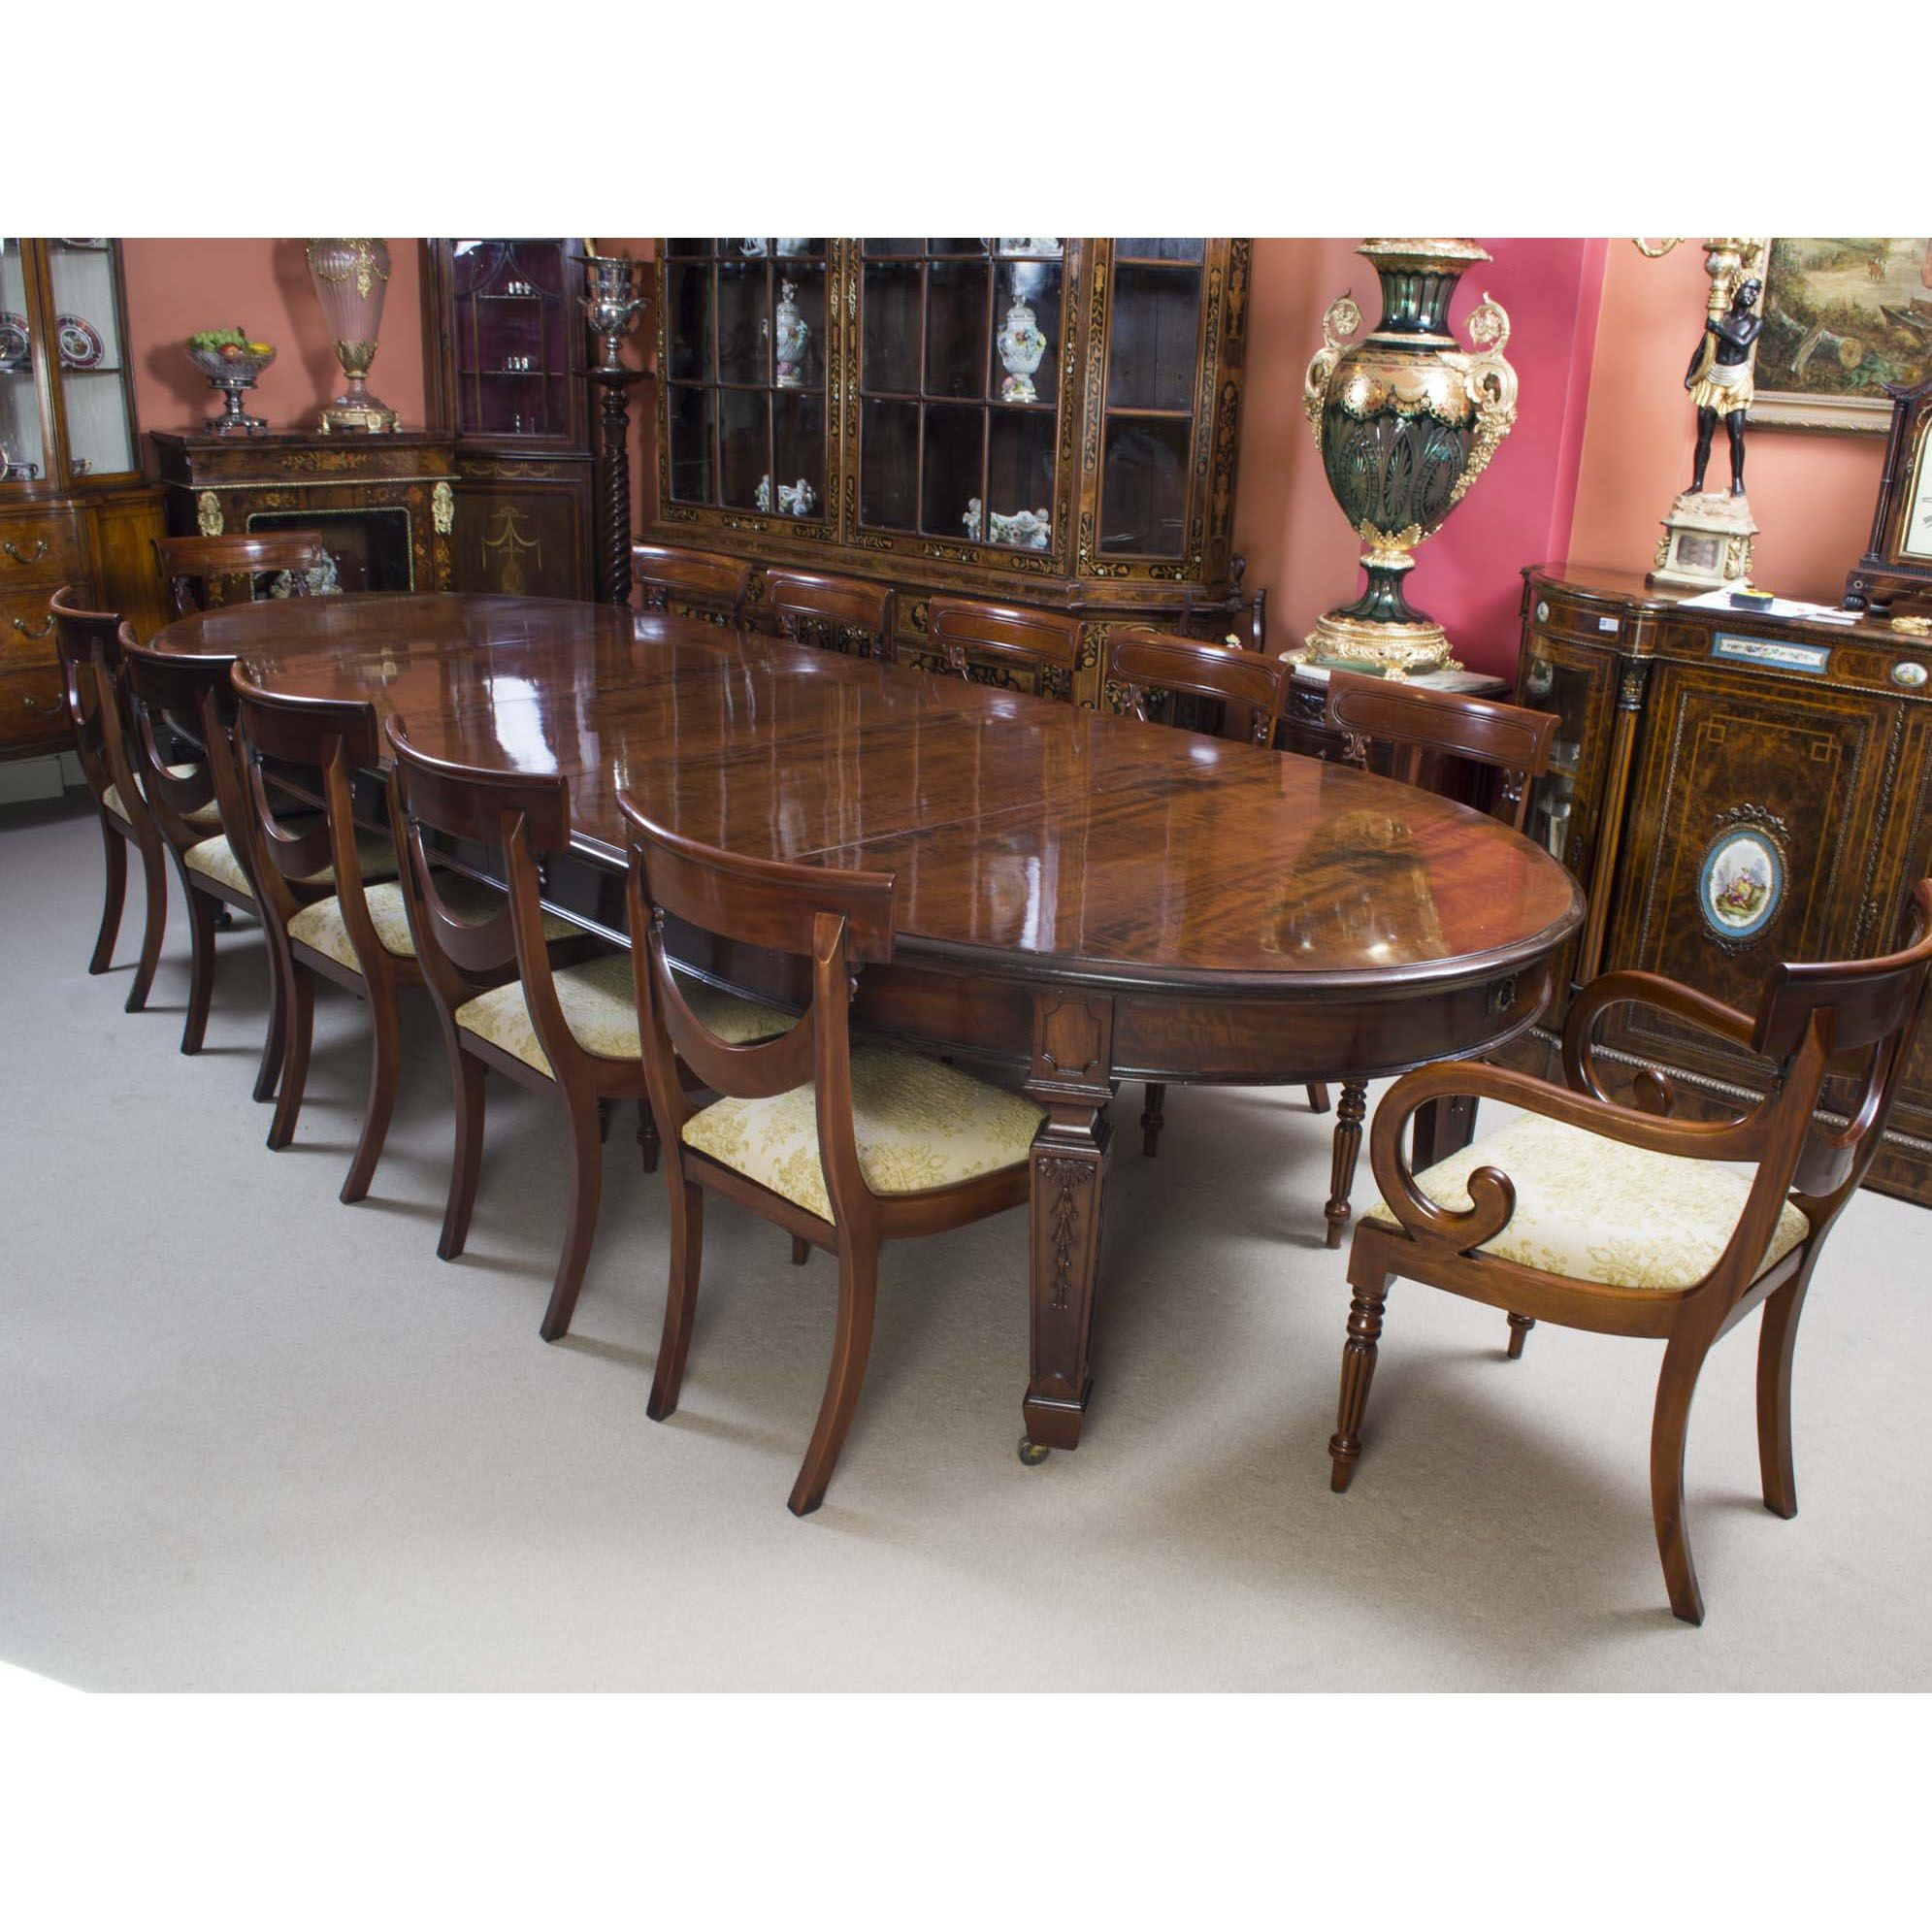 Antique 12ft 6 Victorian Dining Table 12 Chairs 19th Century Esstisch Dekor Tisch Und Stuhle Esszimmertisch